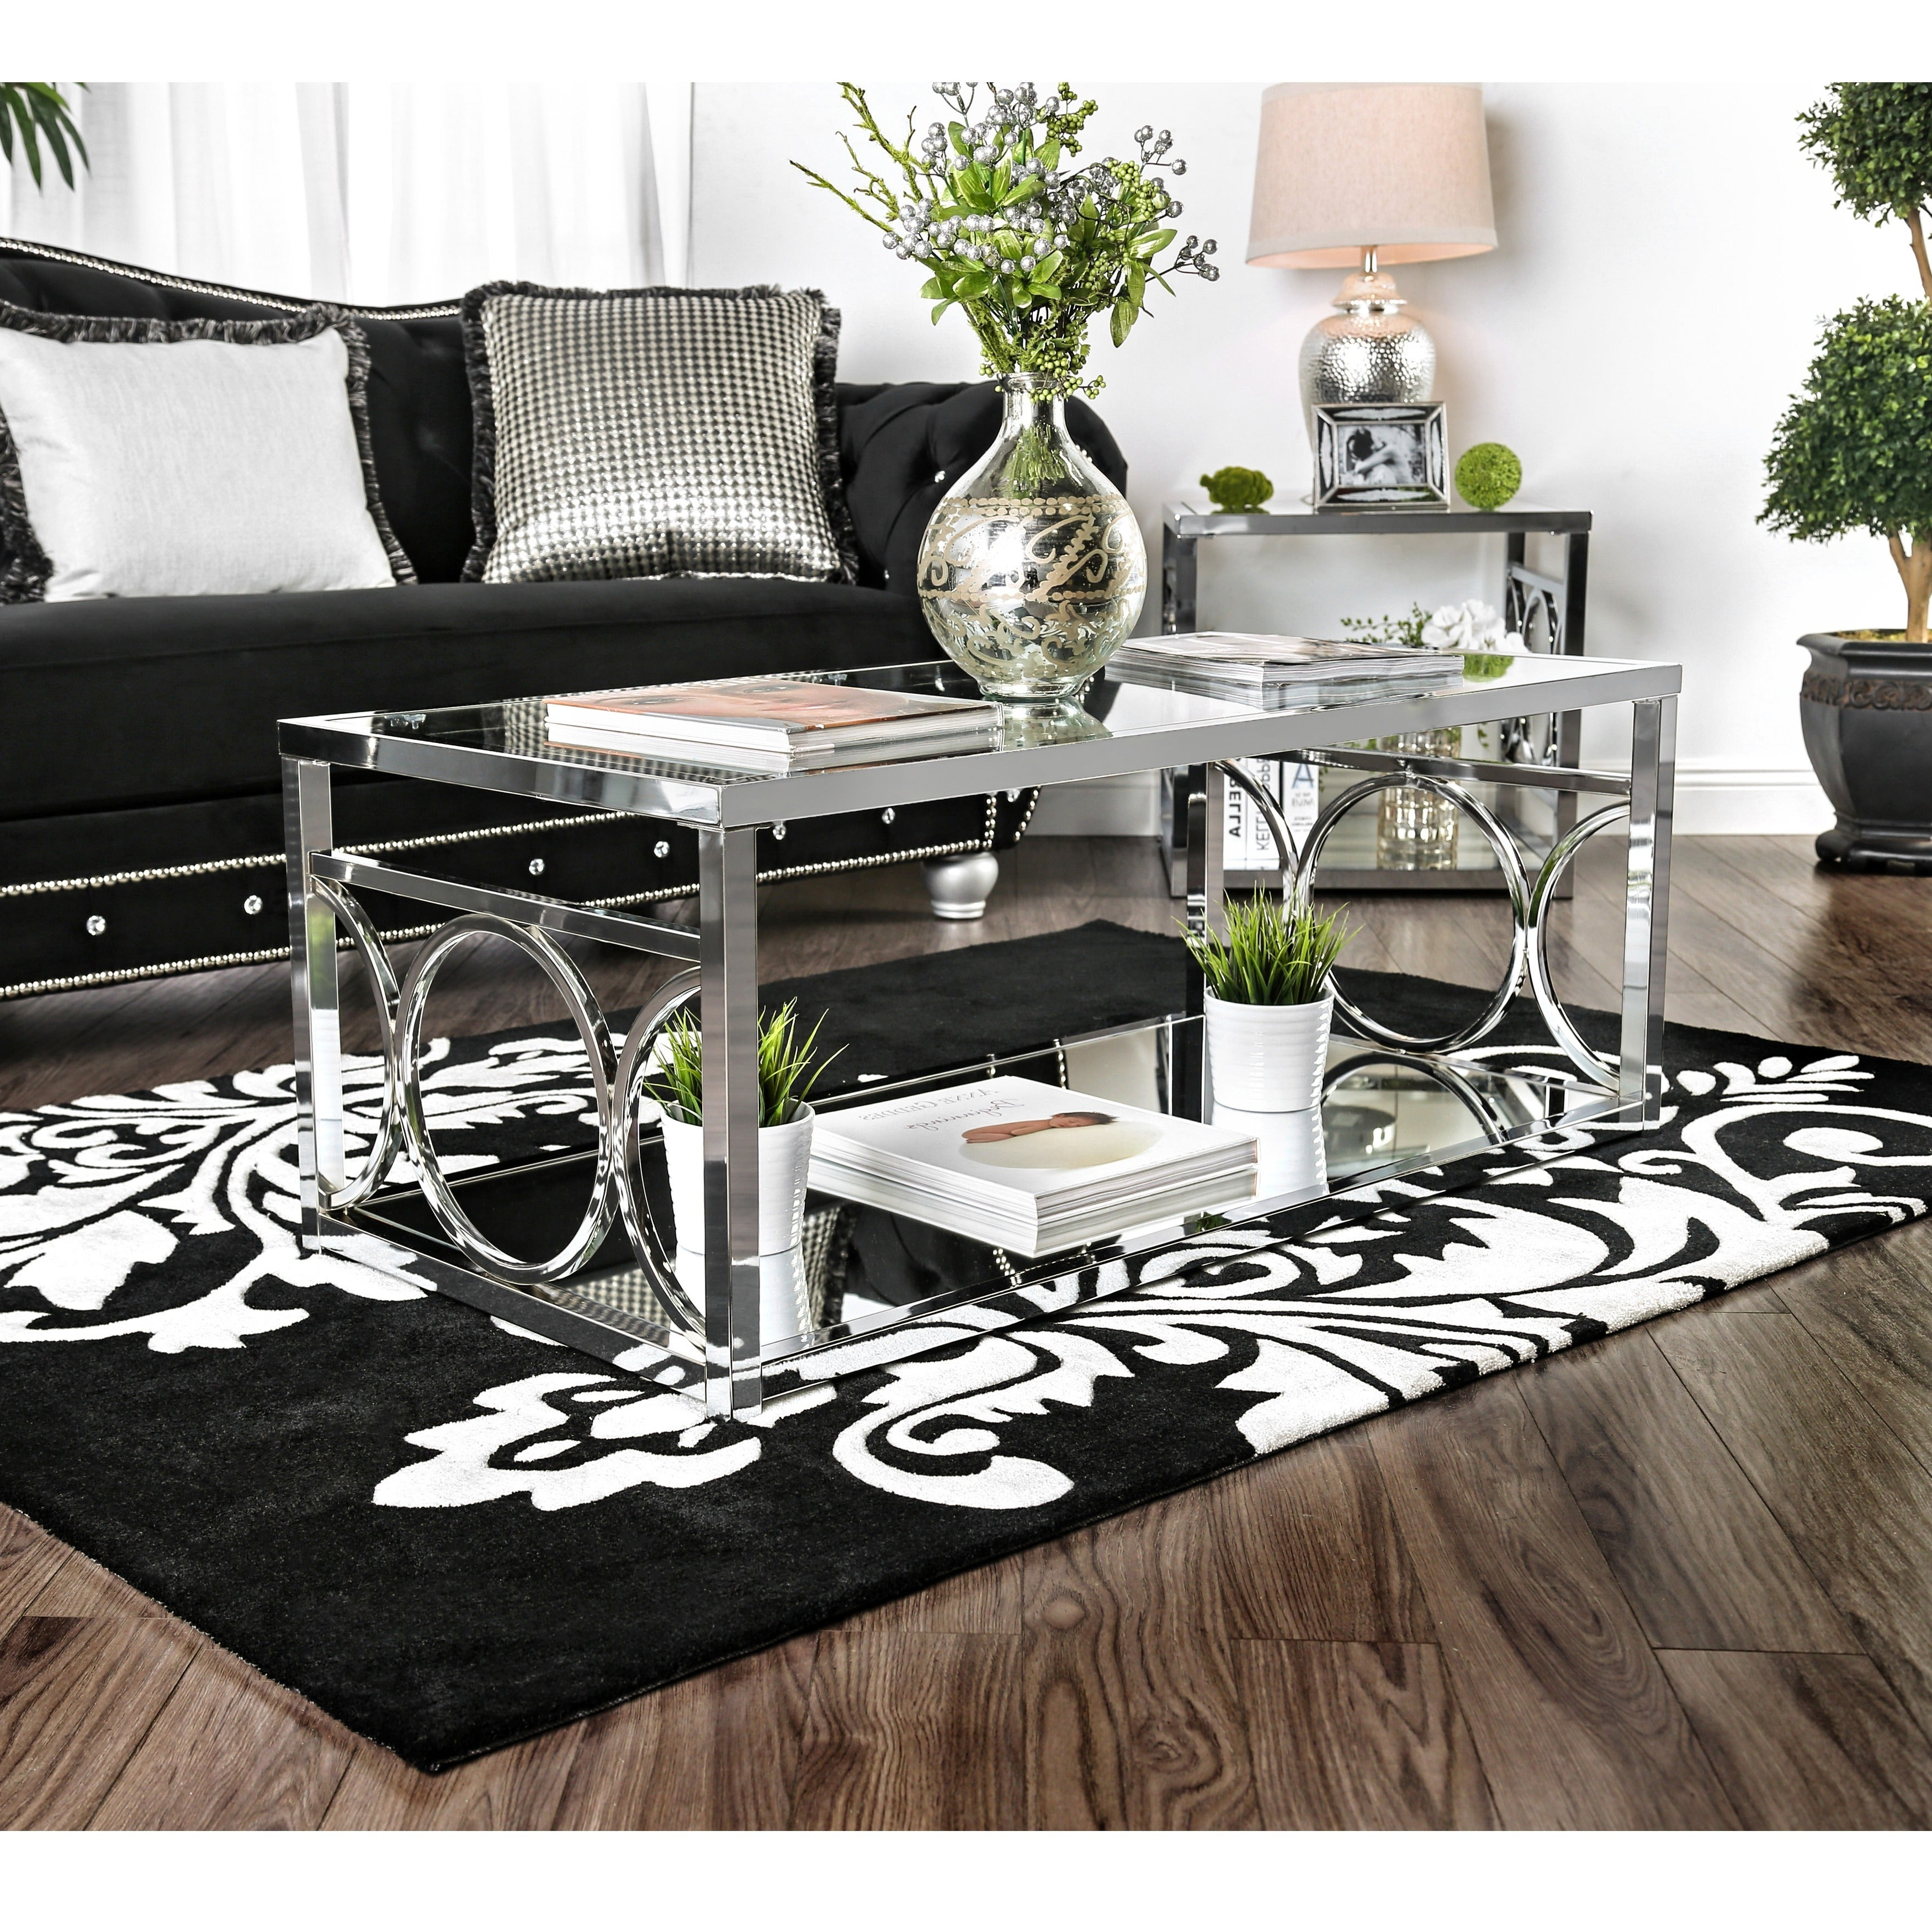 2020 Silver Orchid Ipsen Contemporary Glass Top Coffee Tables In Silver Orchid Ipsen Contemporary Glass Top Coffee Table (Gallery 1 of 20)